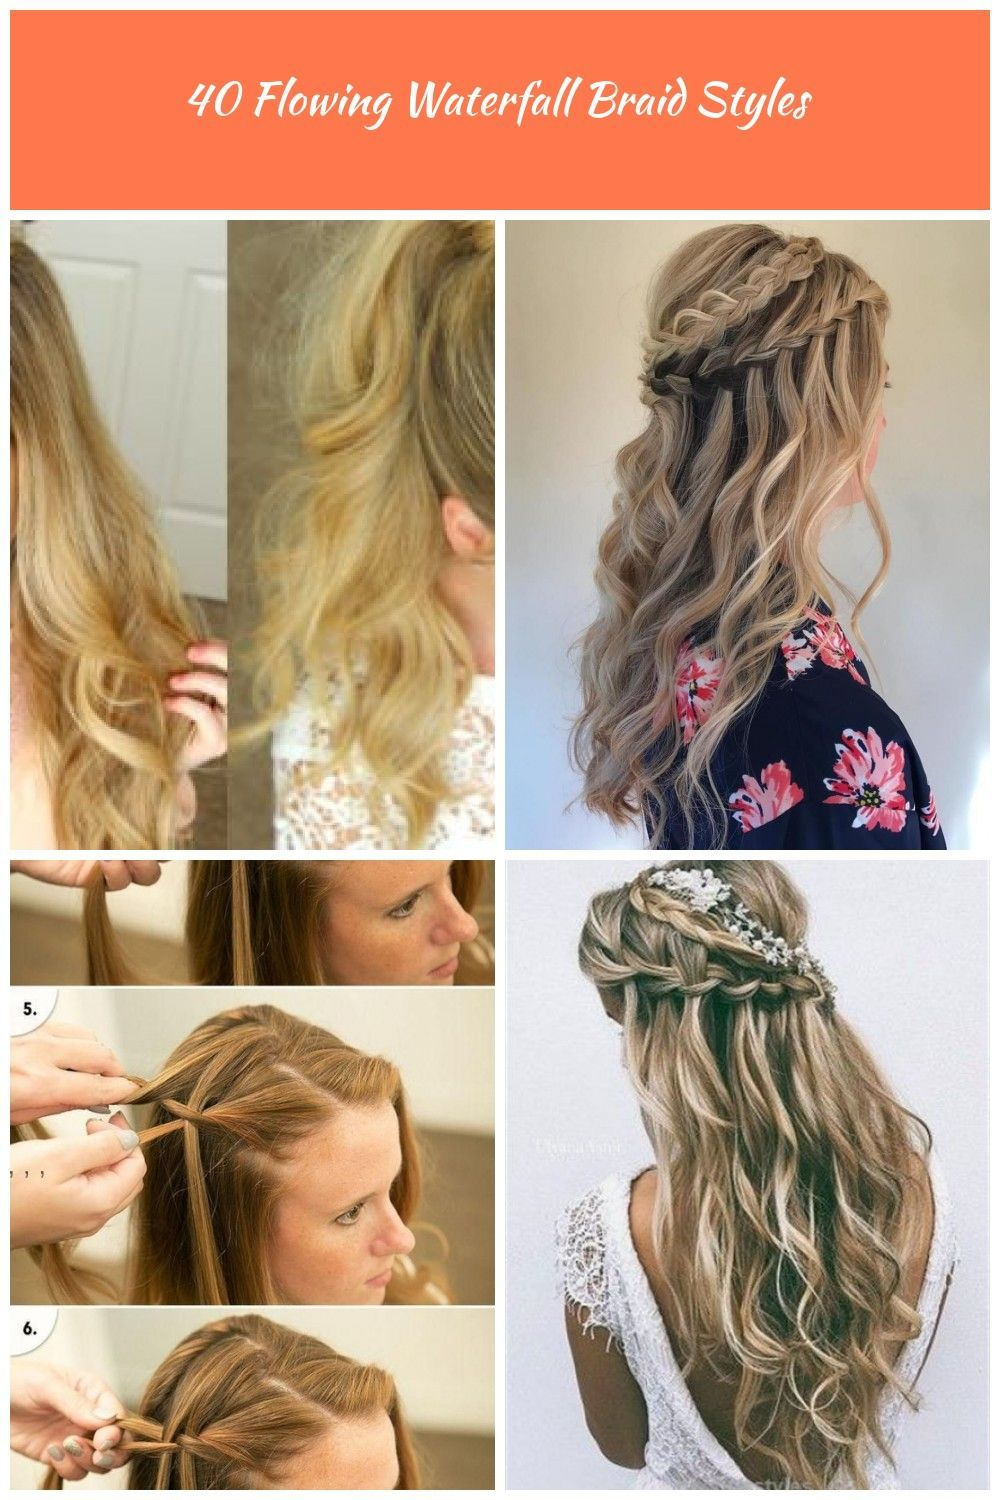 Waterfall Braid Top Knot  #braid #Knot #Top #waterfall #braidedtopknots Waterfall Braid Top Knot  #braid #Knot #Top #waterfall #braidedtopknots Waterfall Braid Top Knot  #braid #Knot #Top #waterfall #braidedtopknots Waterfall Braid Top Knot  #braid #Knot #Top #waterfall Waterfall braids #braidedtopknots Waterfall Braid Top Knot  #braid #Knot #Top #waterfall #braidedtopknots Waterfall Braid Top Knot  #braid #Knot #Top #waterfall #braidedtopknots Waterfall Braid Top Knot  #braid #Knot #Top #waterf #braidedtopknots